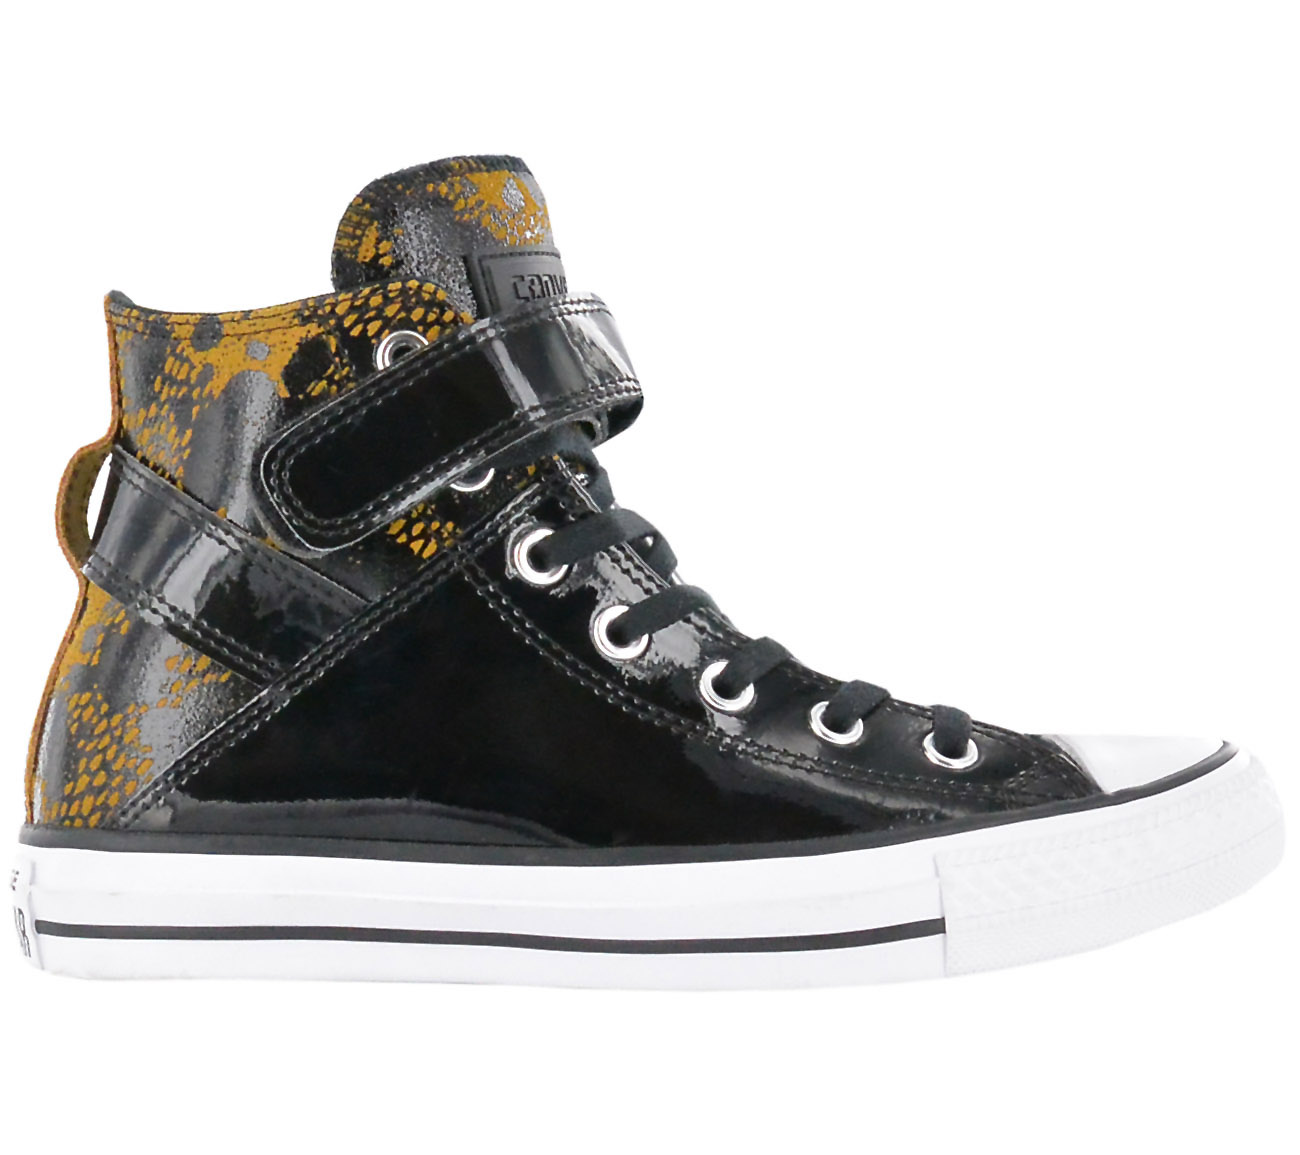 converse damen sneaker chucks all star taylor ct brea hi schuhe leder high neu ebay. Black Bedroom Furniture Sets. Home Design Ideas